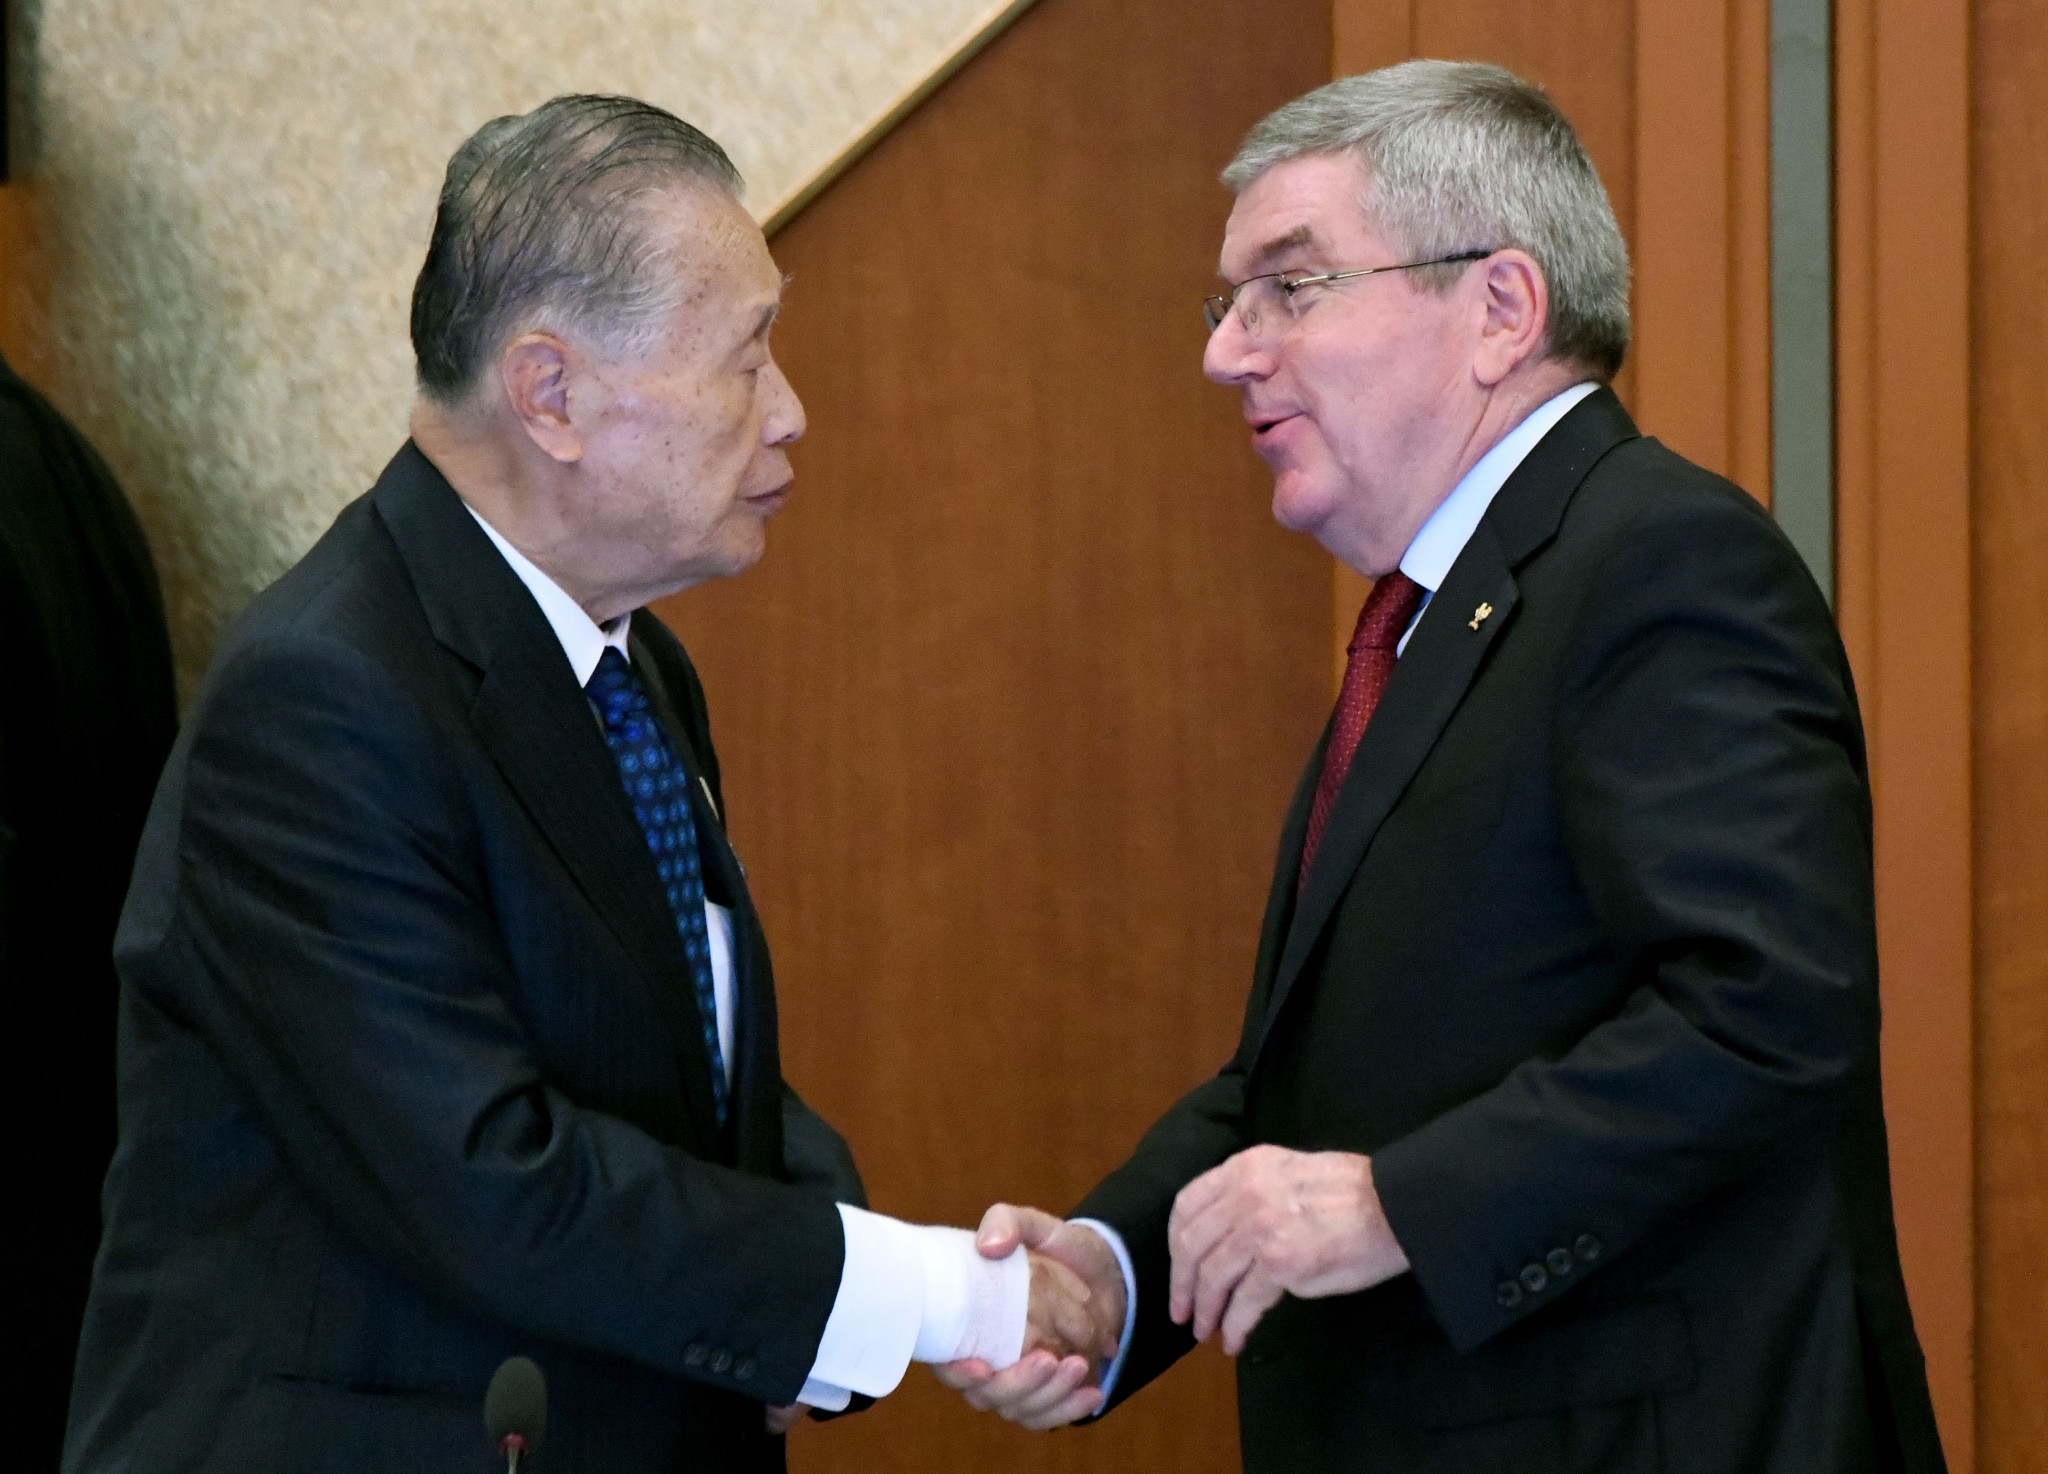 Thomas Bach gave a glowing assessment of the progress made by Tokyo 2020 ©Getty Images